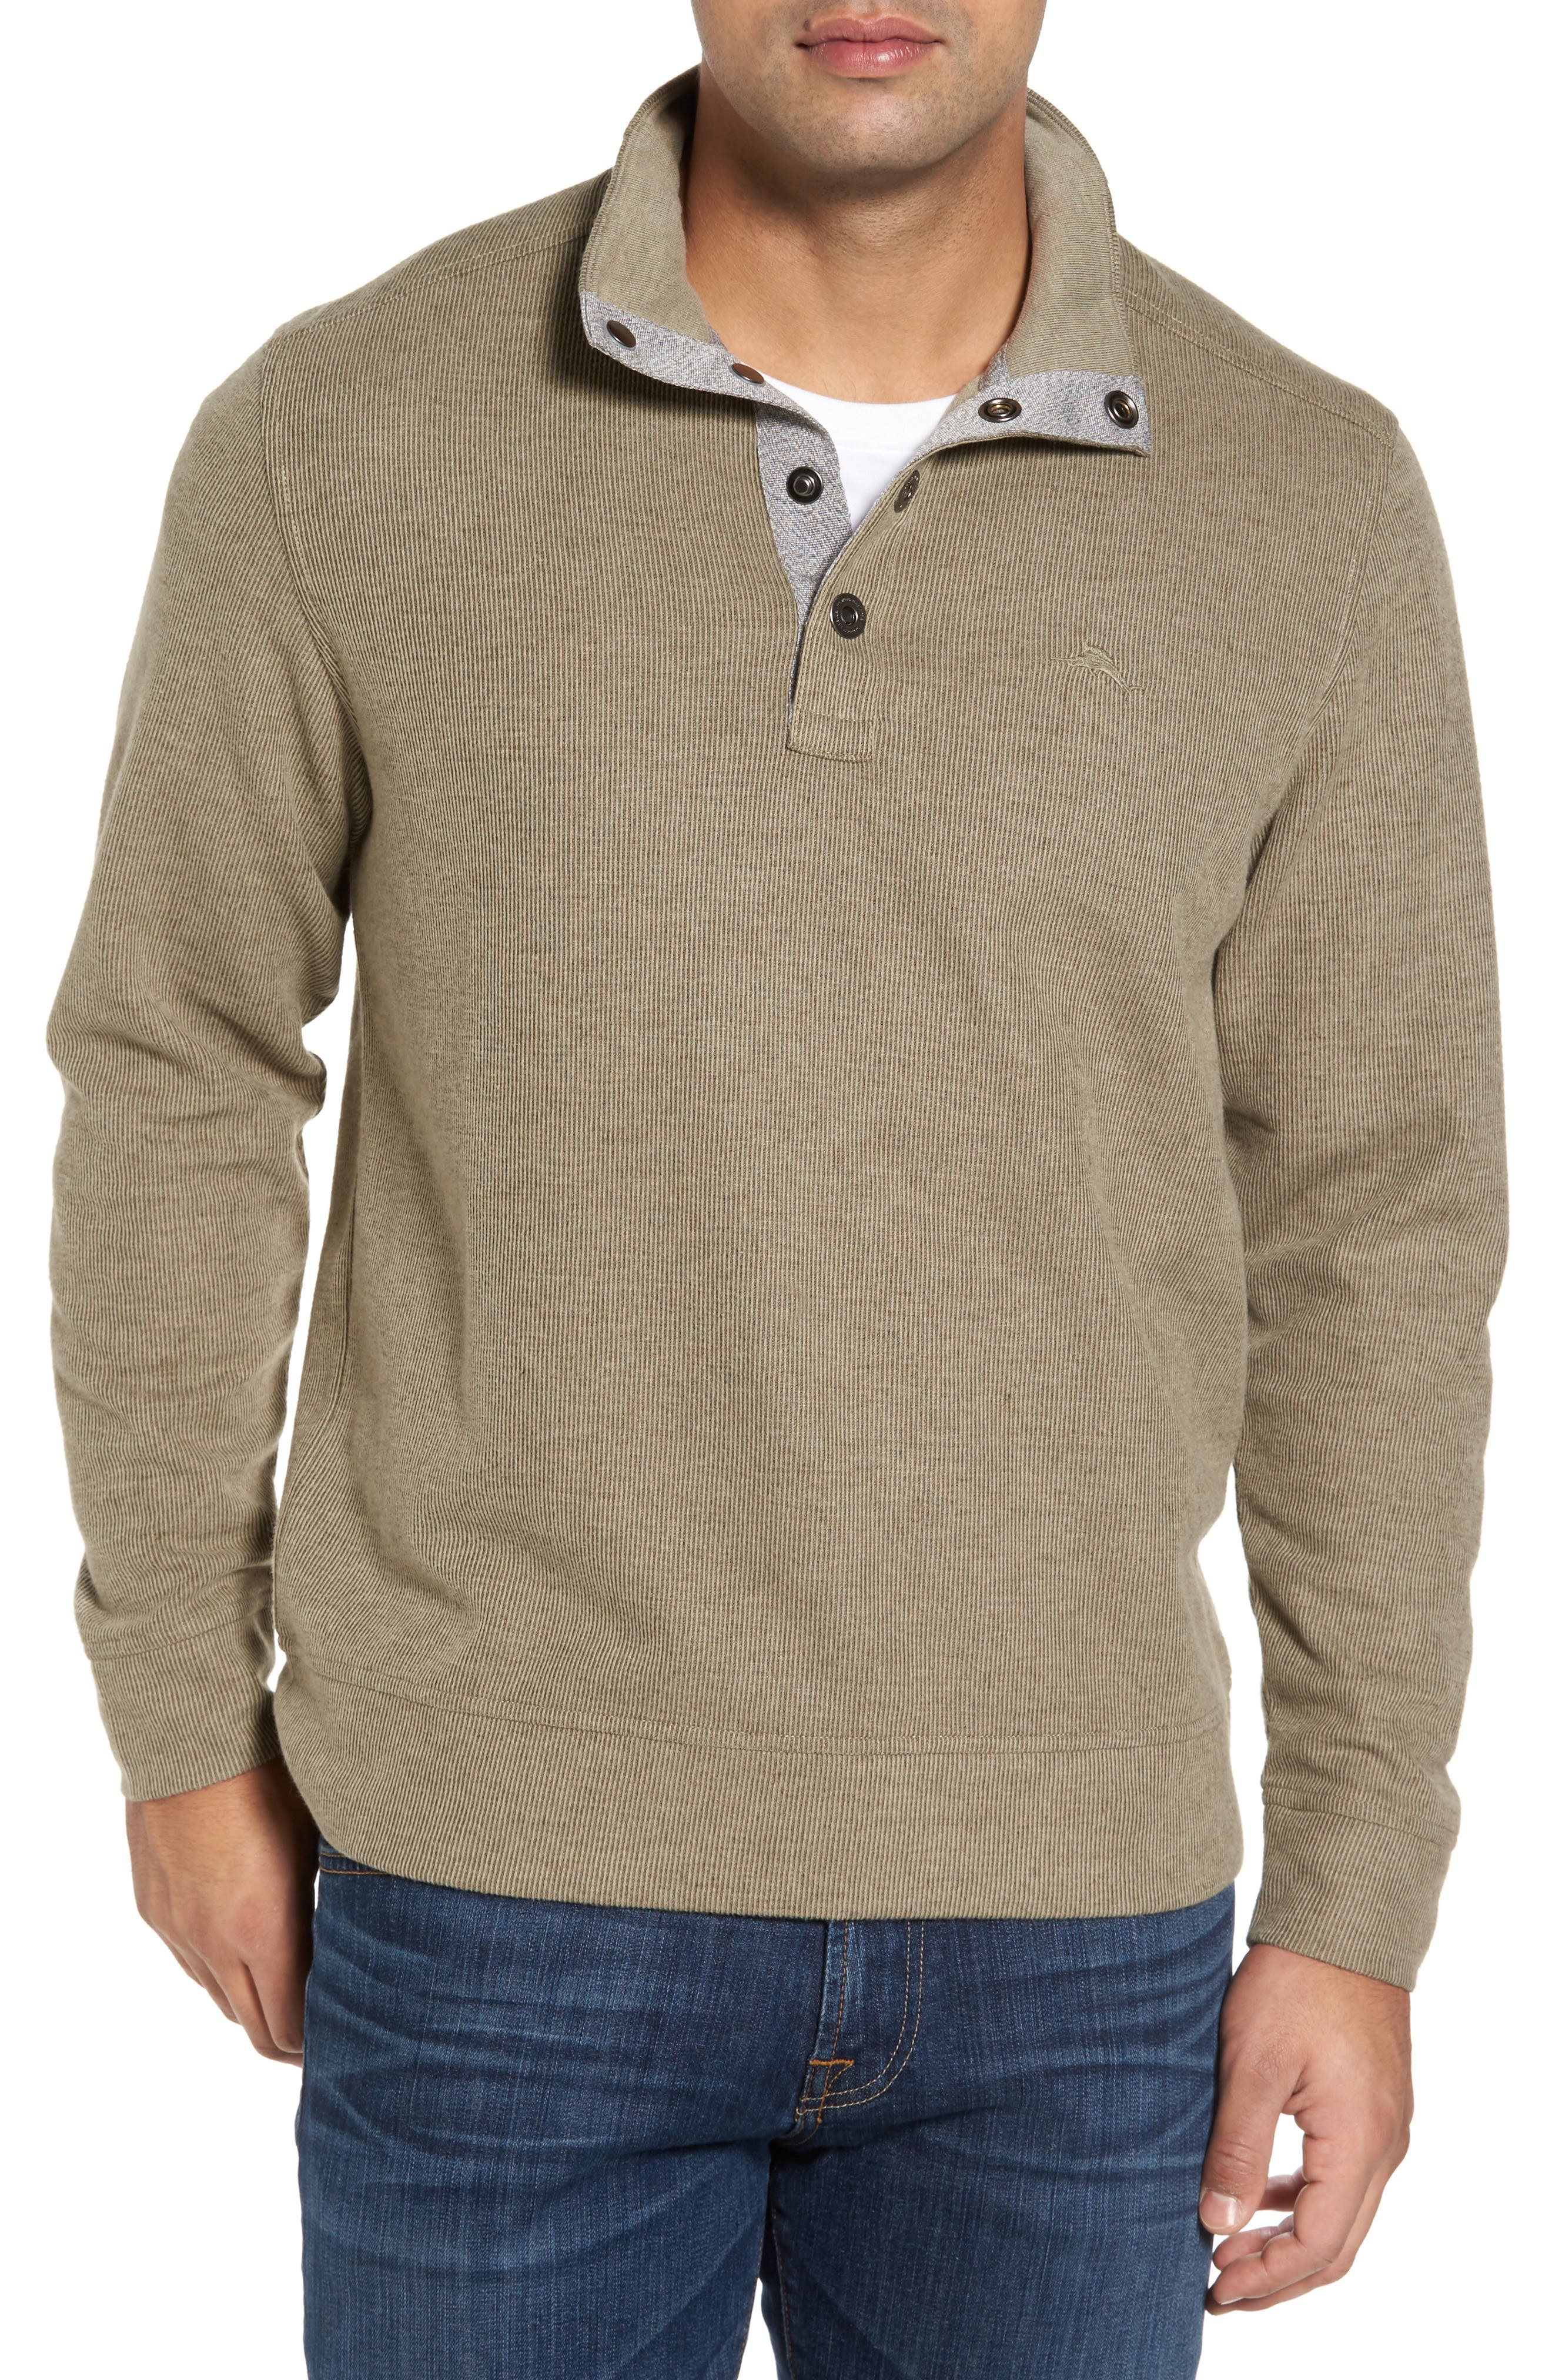 Cold Springs Snap Mock Neck Sweater,                         Main,                         color, Mocha